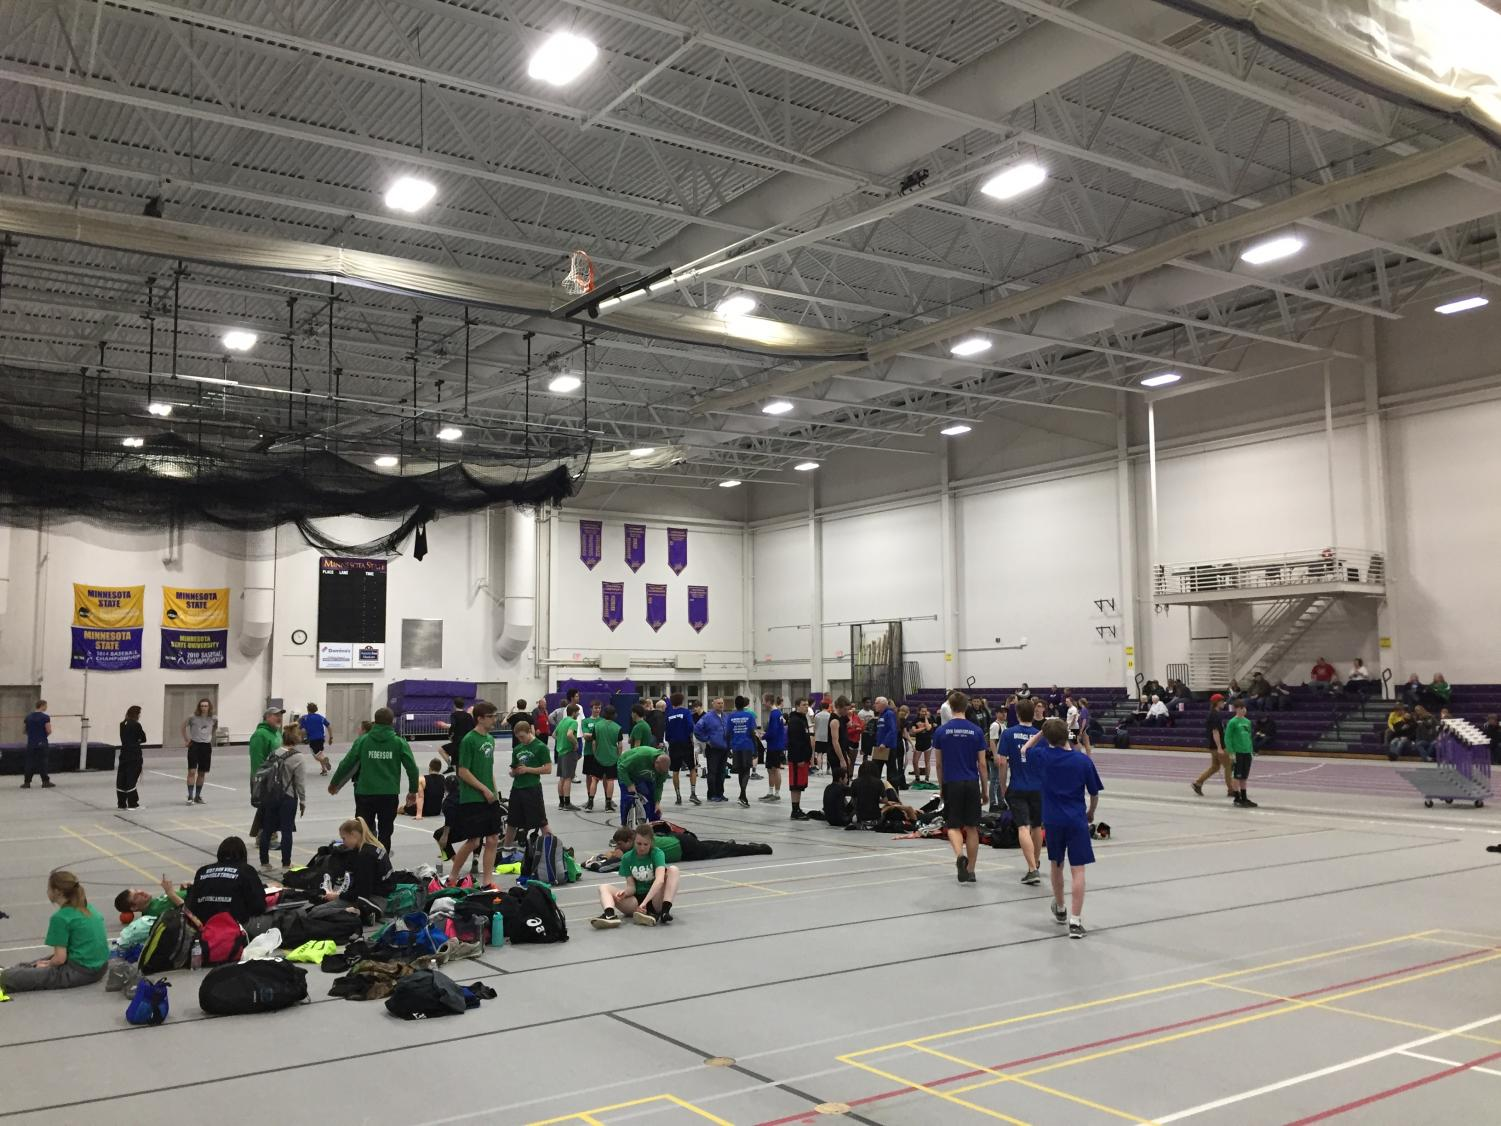 All athletes getting ready for their events to start